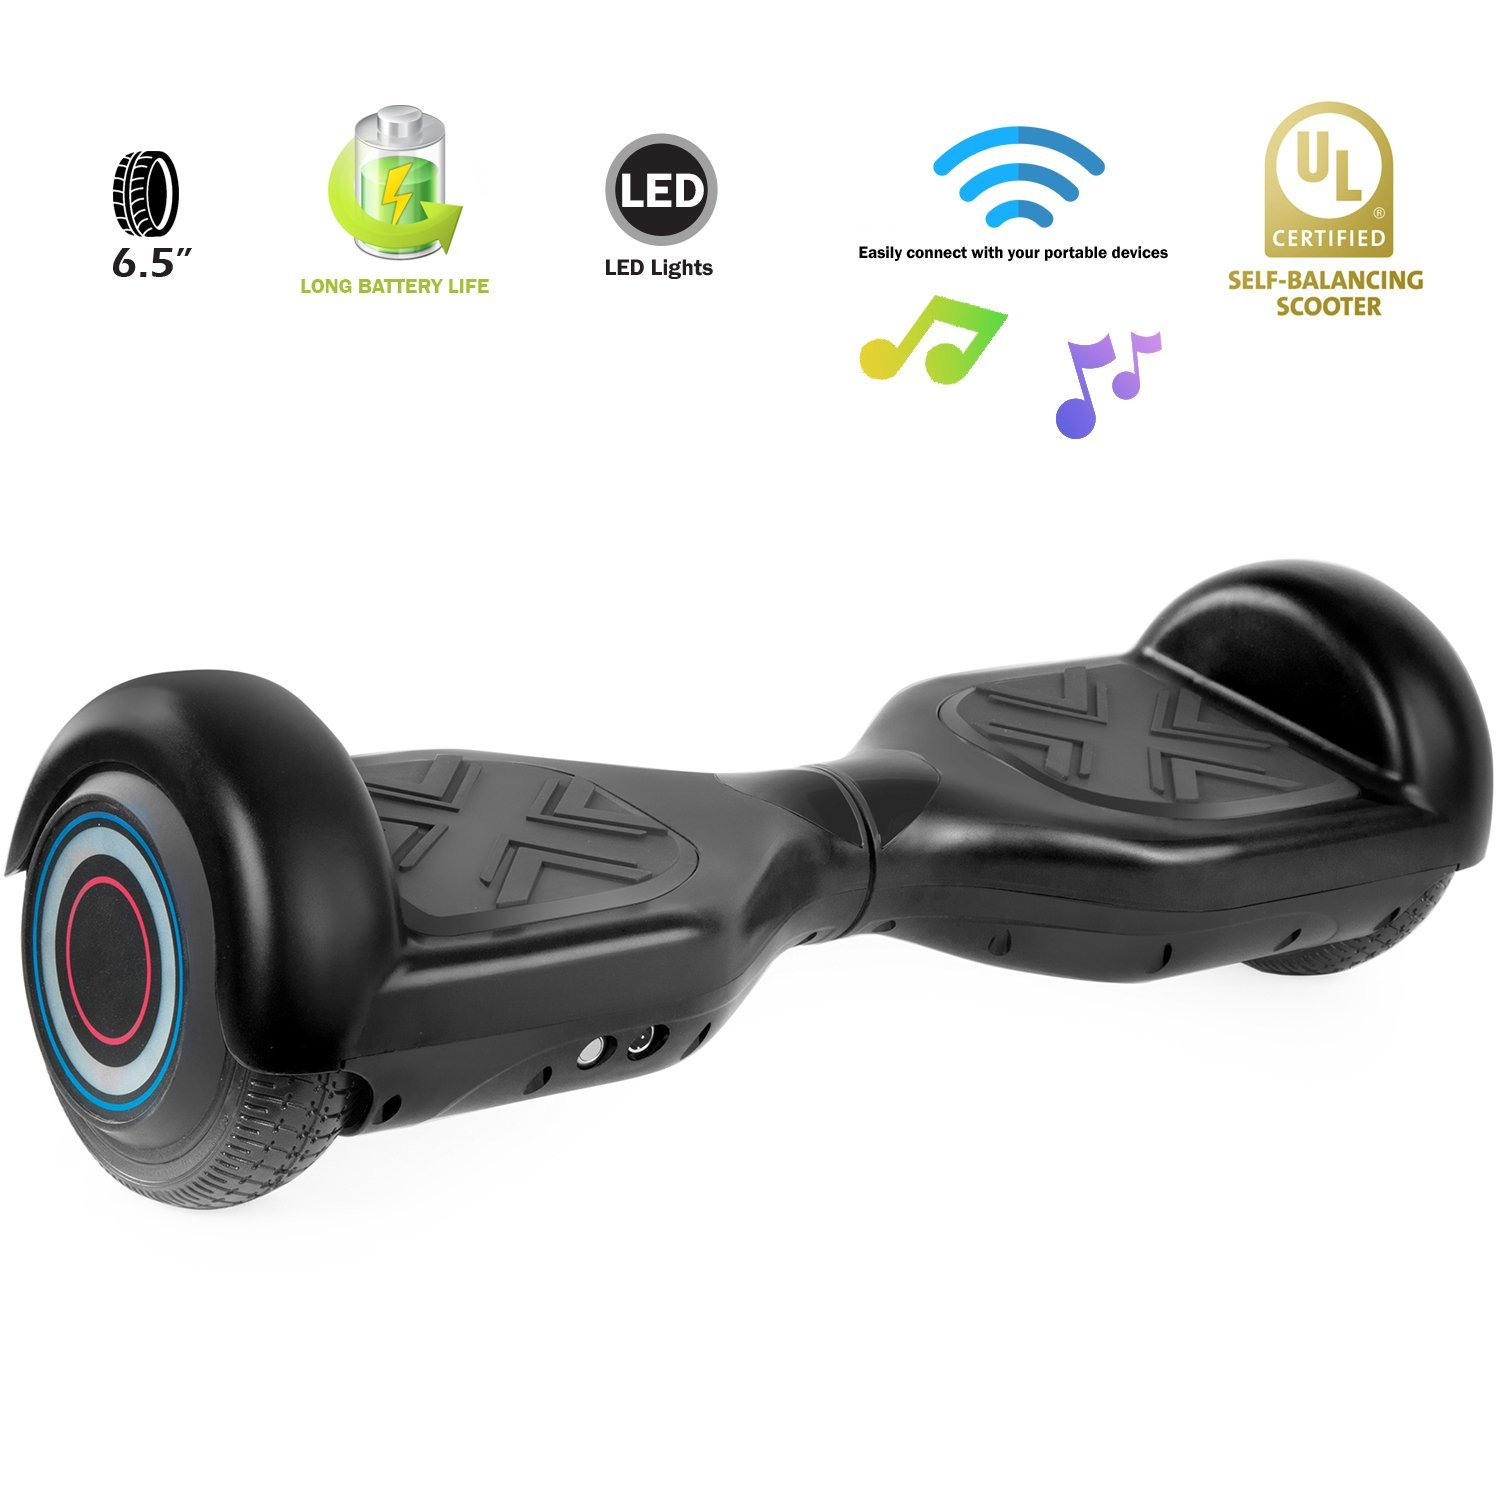 XPRIT Hoverboard w/Bluetooth Speaker (Black) by XPRIT (Image #5)